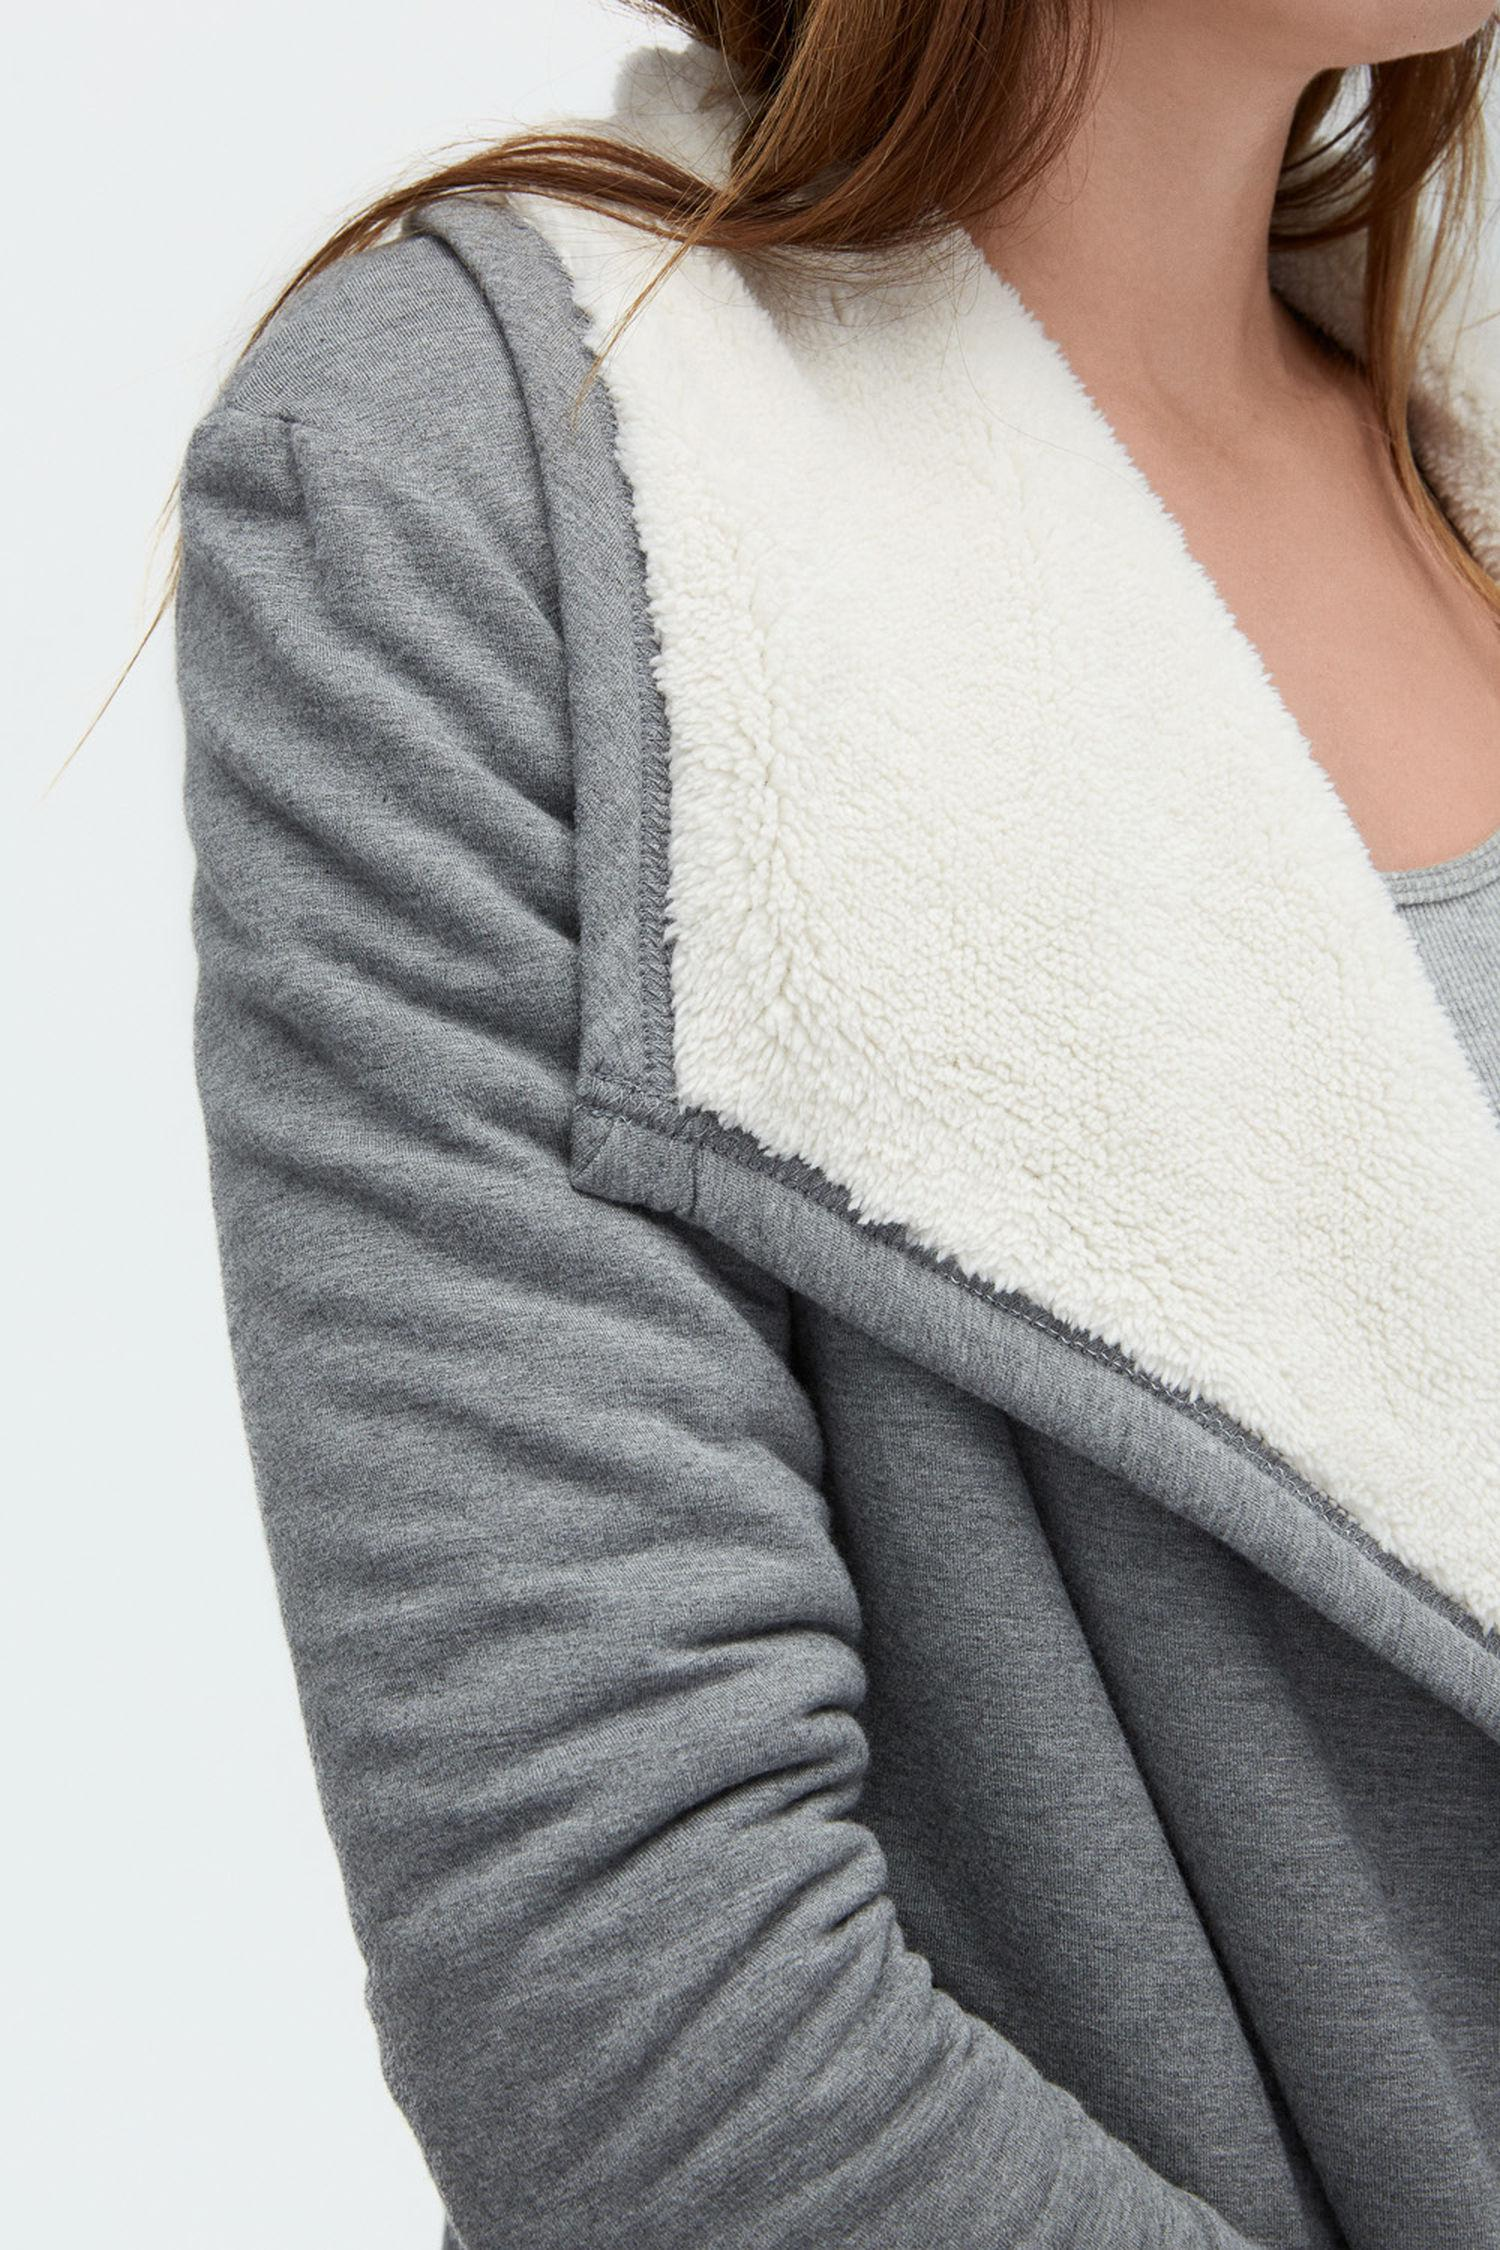 Ugg Women's Sherpa Lined Shawl Cardigan in Gray | Lyst